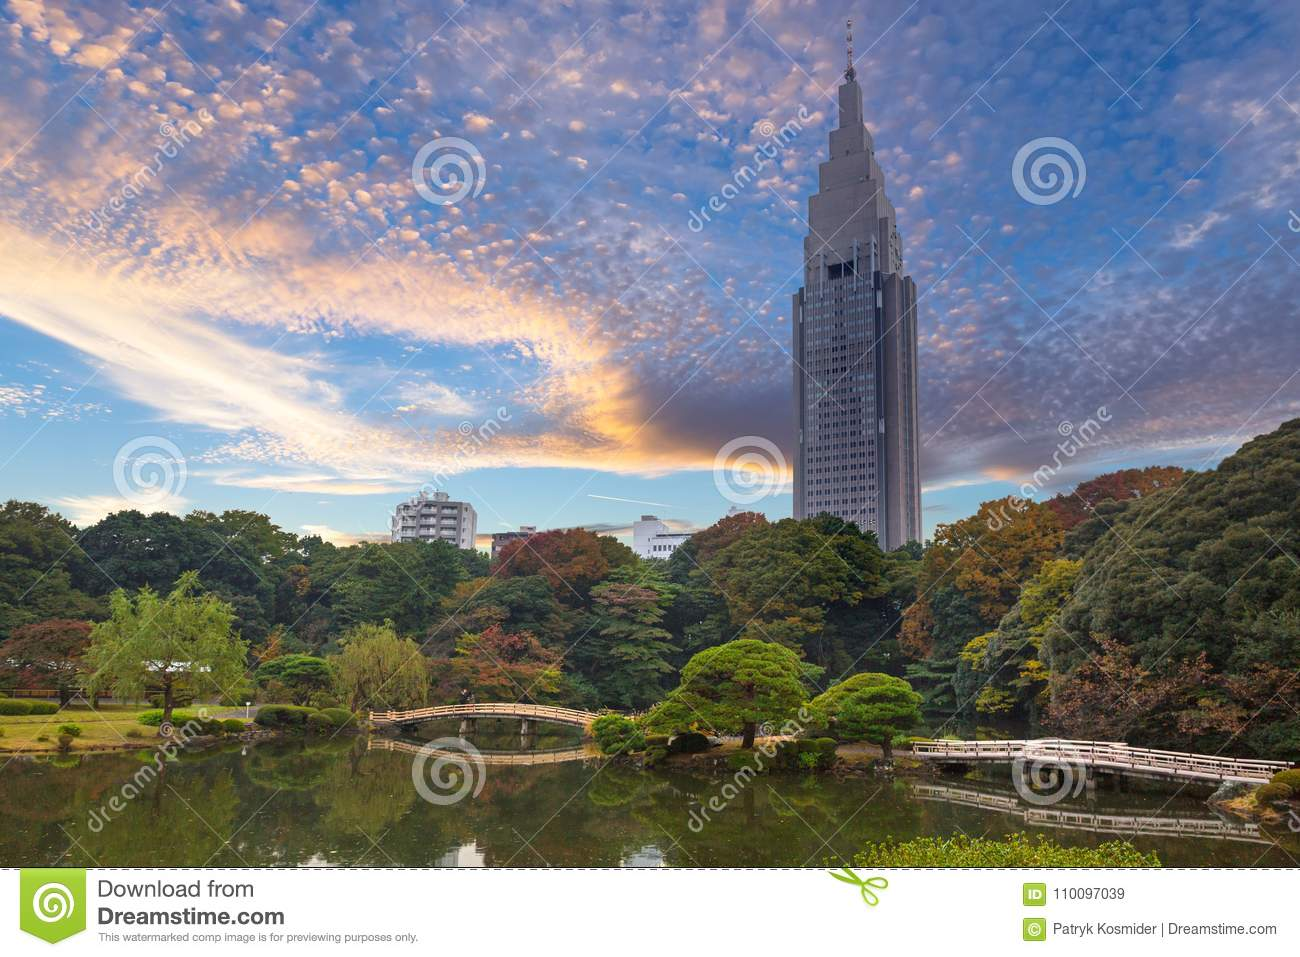 Autumn in the Shinjuku Park